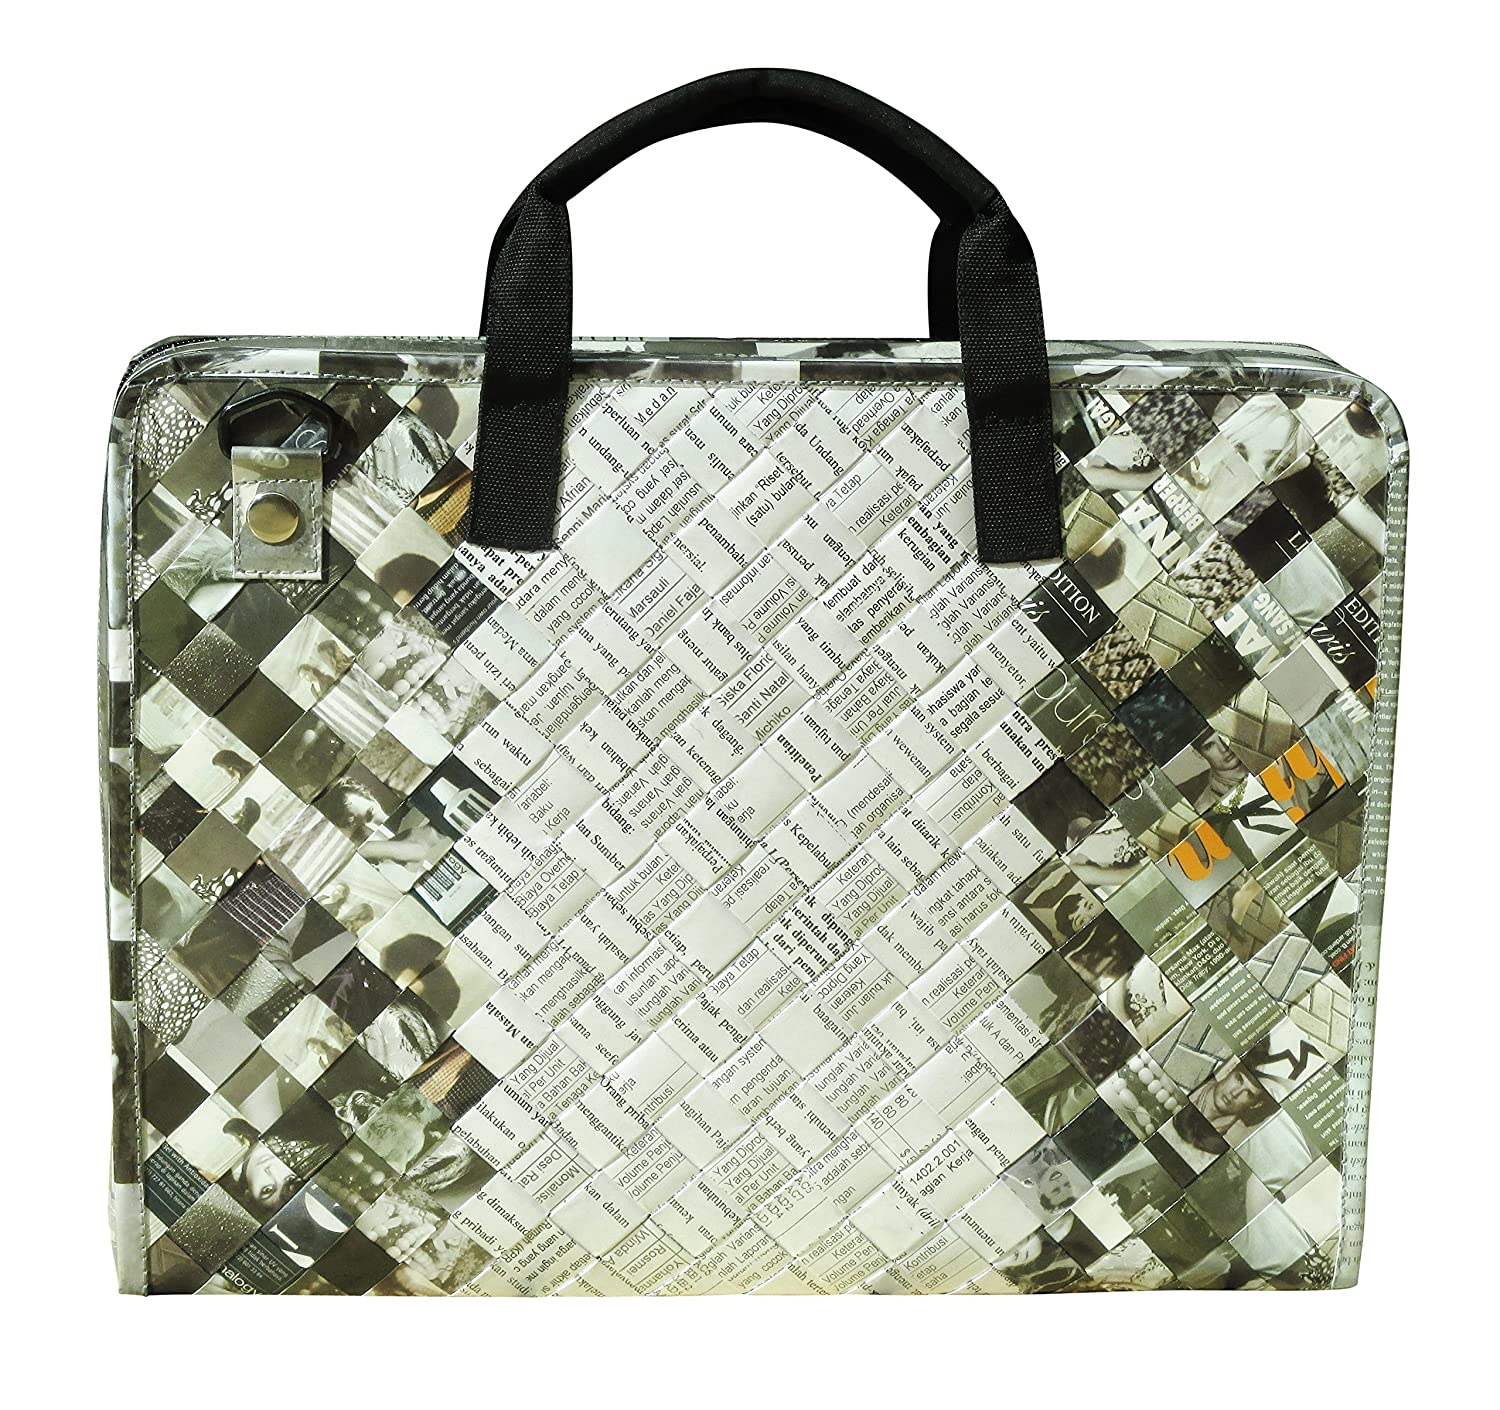 b8399cbe3b88 LAPTOP briefcase made of magazine paper